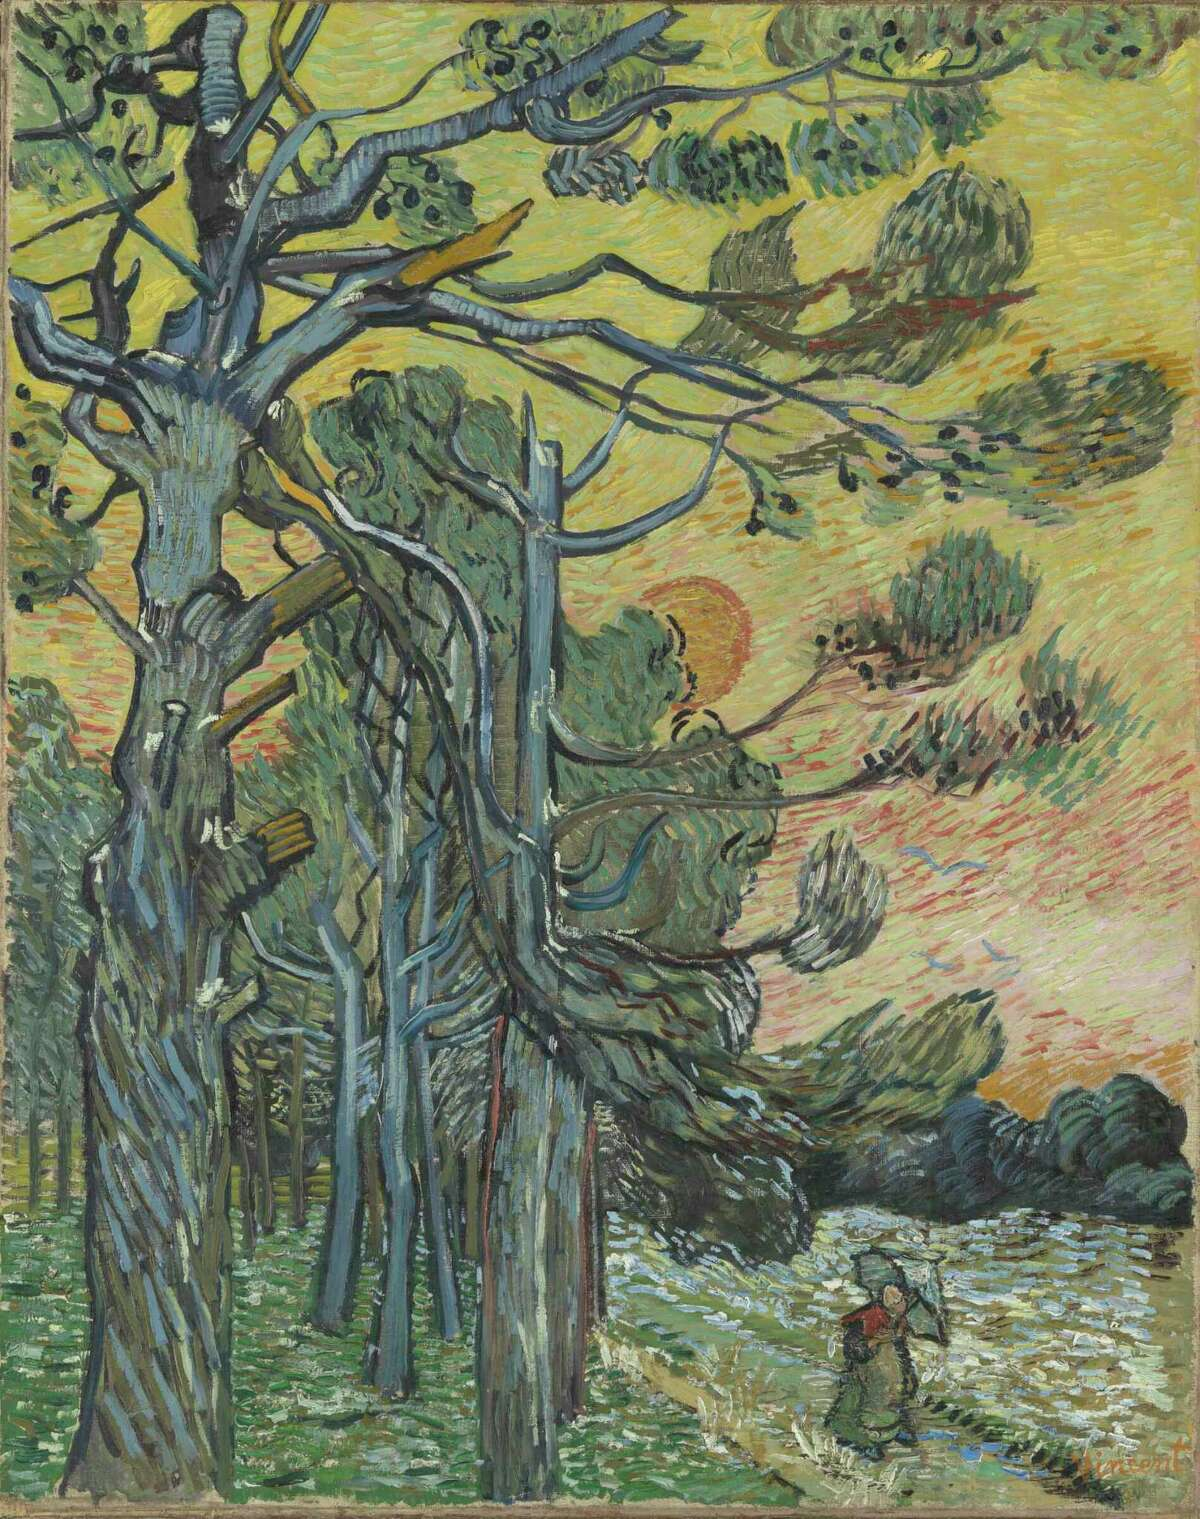 """Vincent Van Gogh's """"Pine Trees at Sunset"""" is among works on view in """"Hockney-Van Gogh: The Joy of Nature"""" at the Museum of Fine Arts, Houston Feb. 21-June 20."""